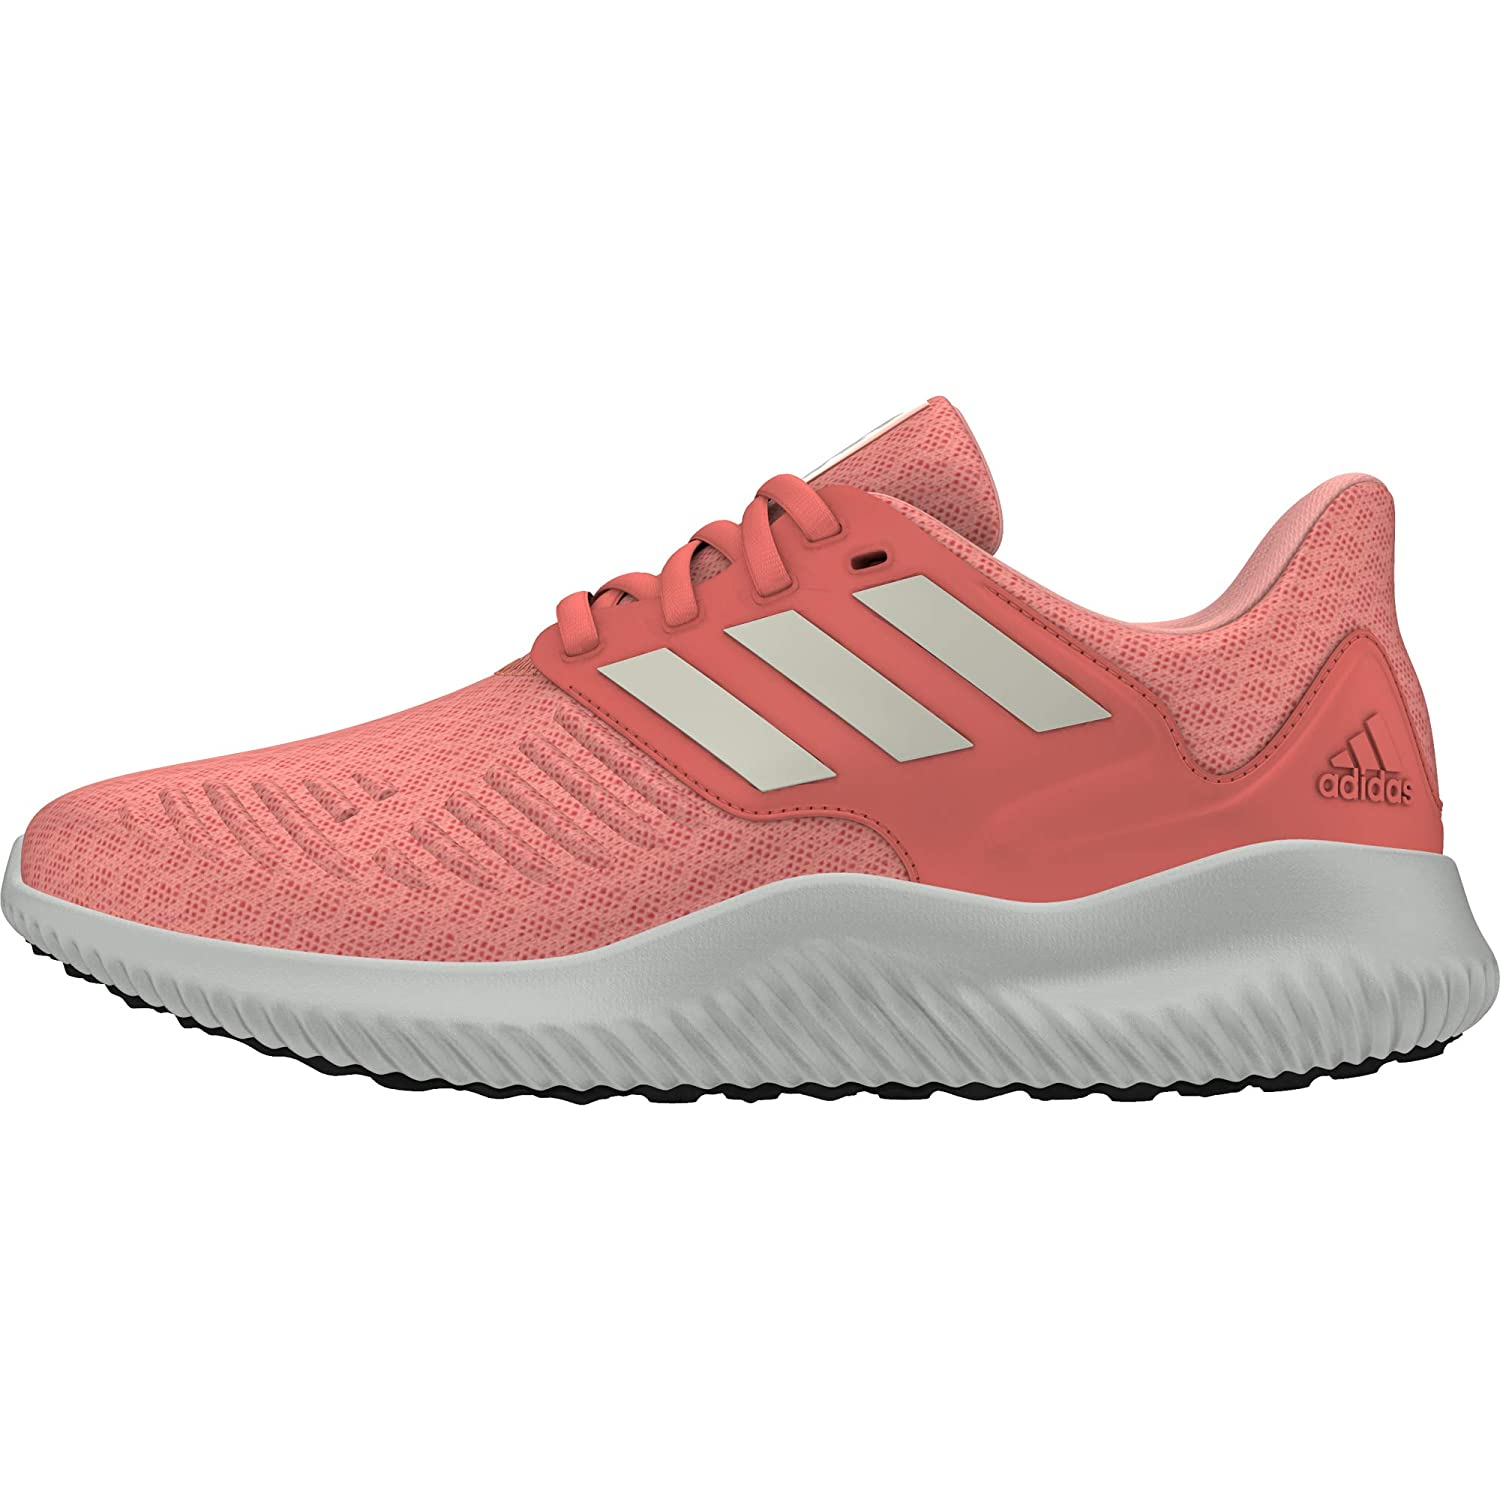 2f71c69bd439f adidas Women s Alphabounce Rc.2 W Fitness Shoes  Amazon.co.uk  Shoes   Bags